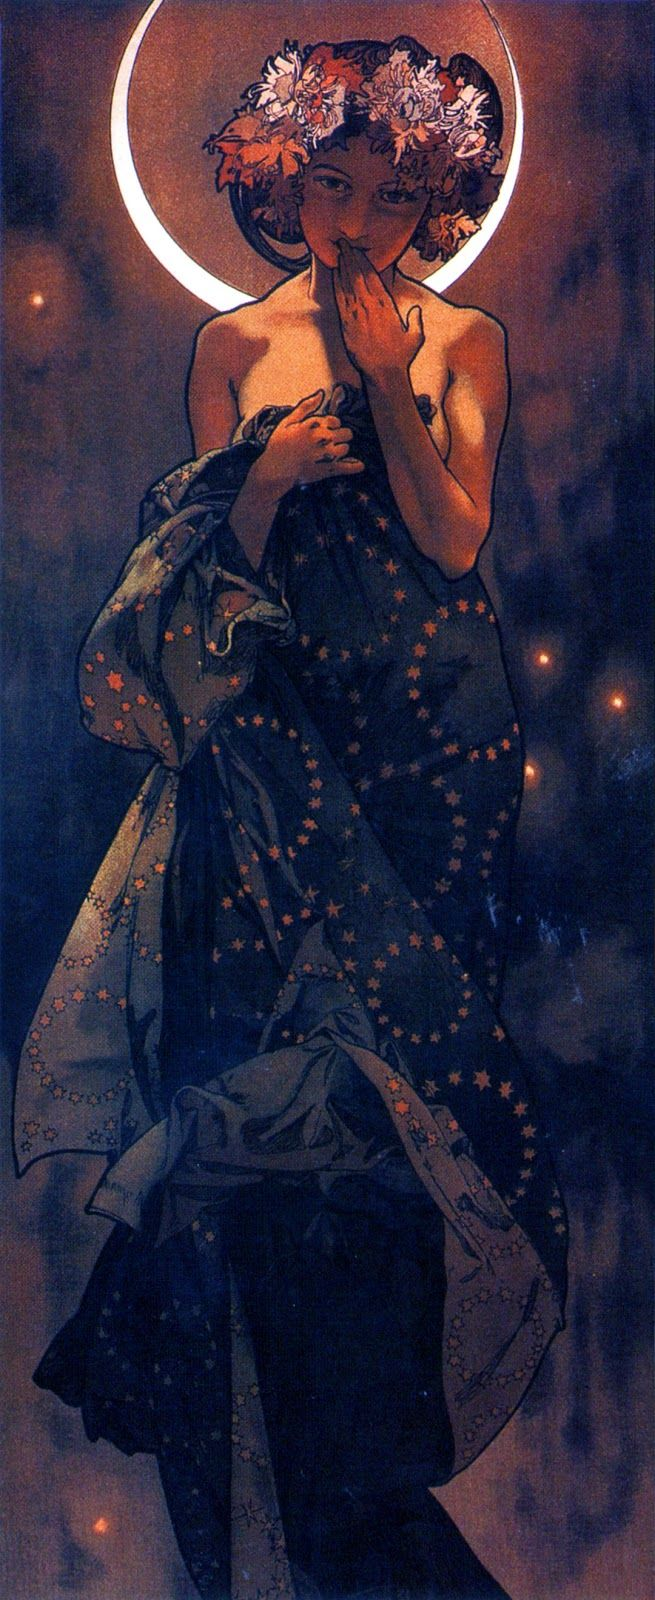 The Moon & Stars by Alphonse Mucha, 1902.